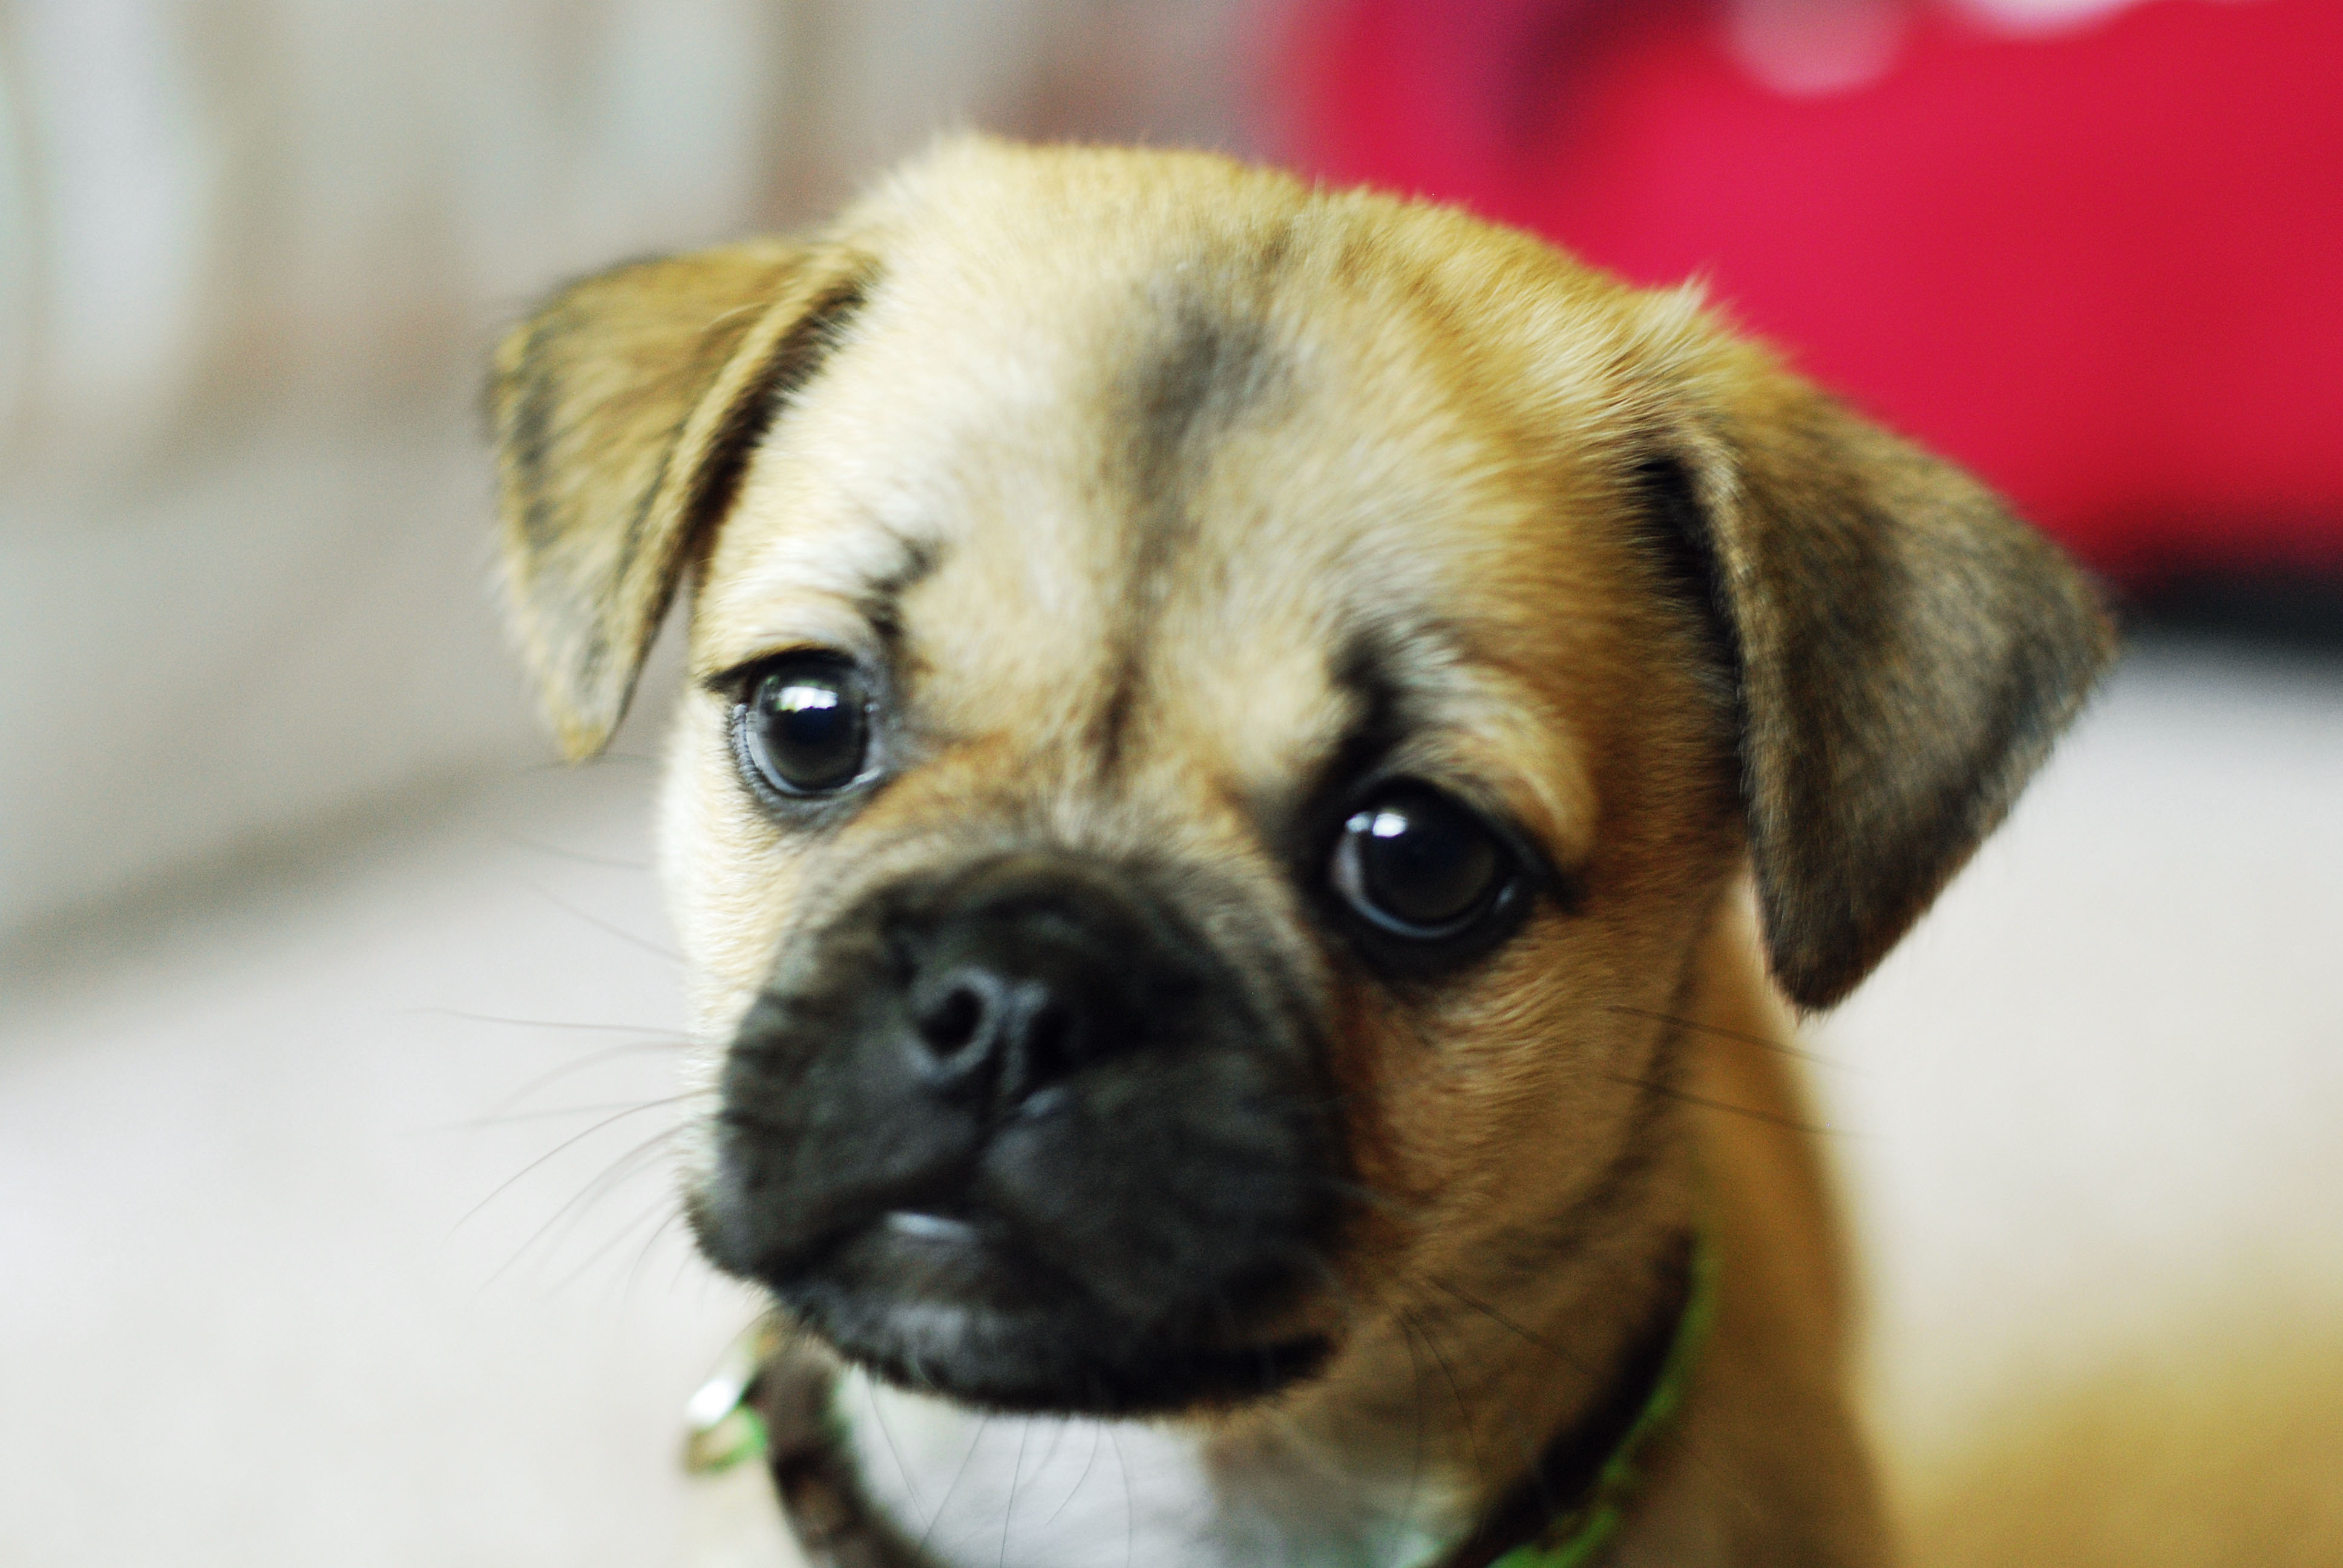 Pug Puppies are the Cutest Puppy Toob